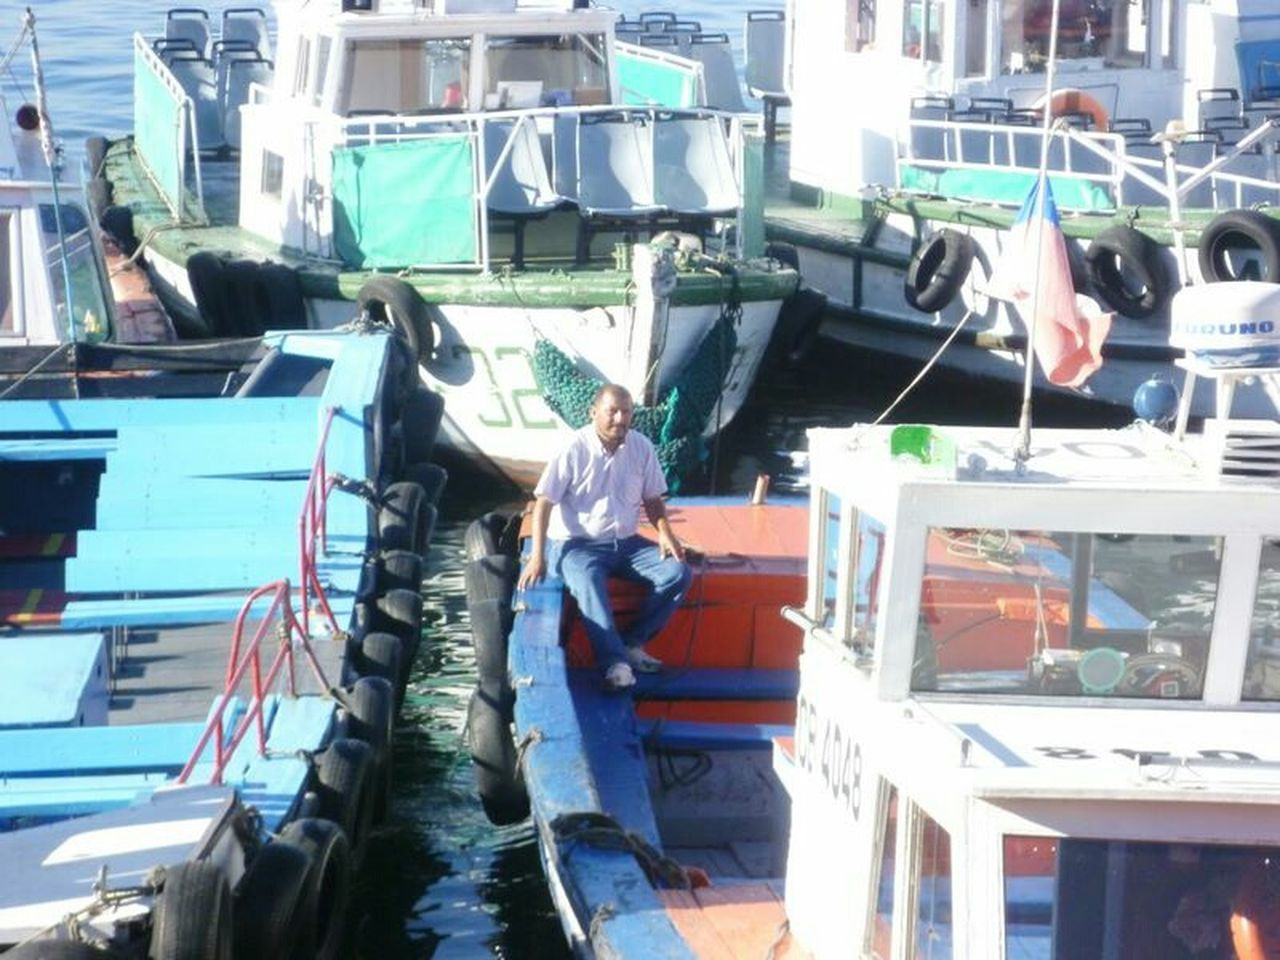 PeopleOfTheOceans People And Places. Chile Valparaiso, Chile Harbour View Boats